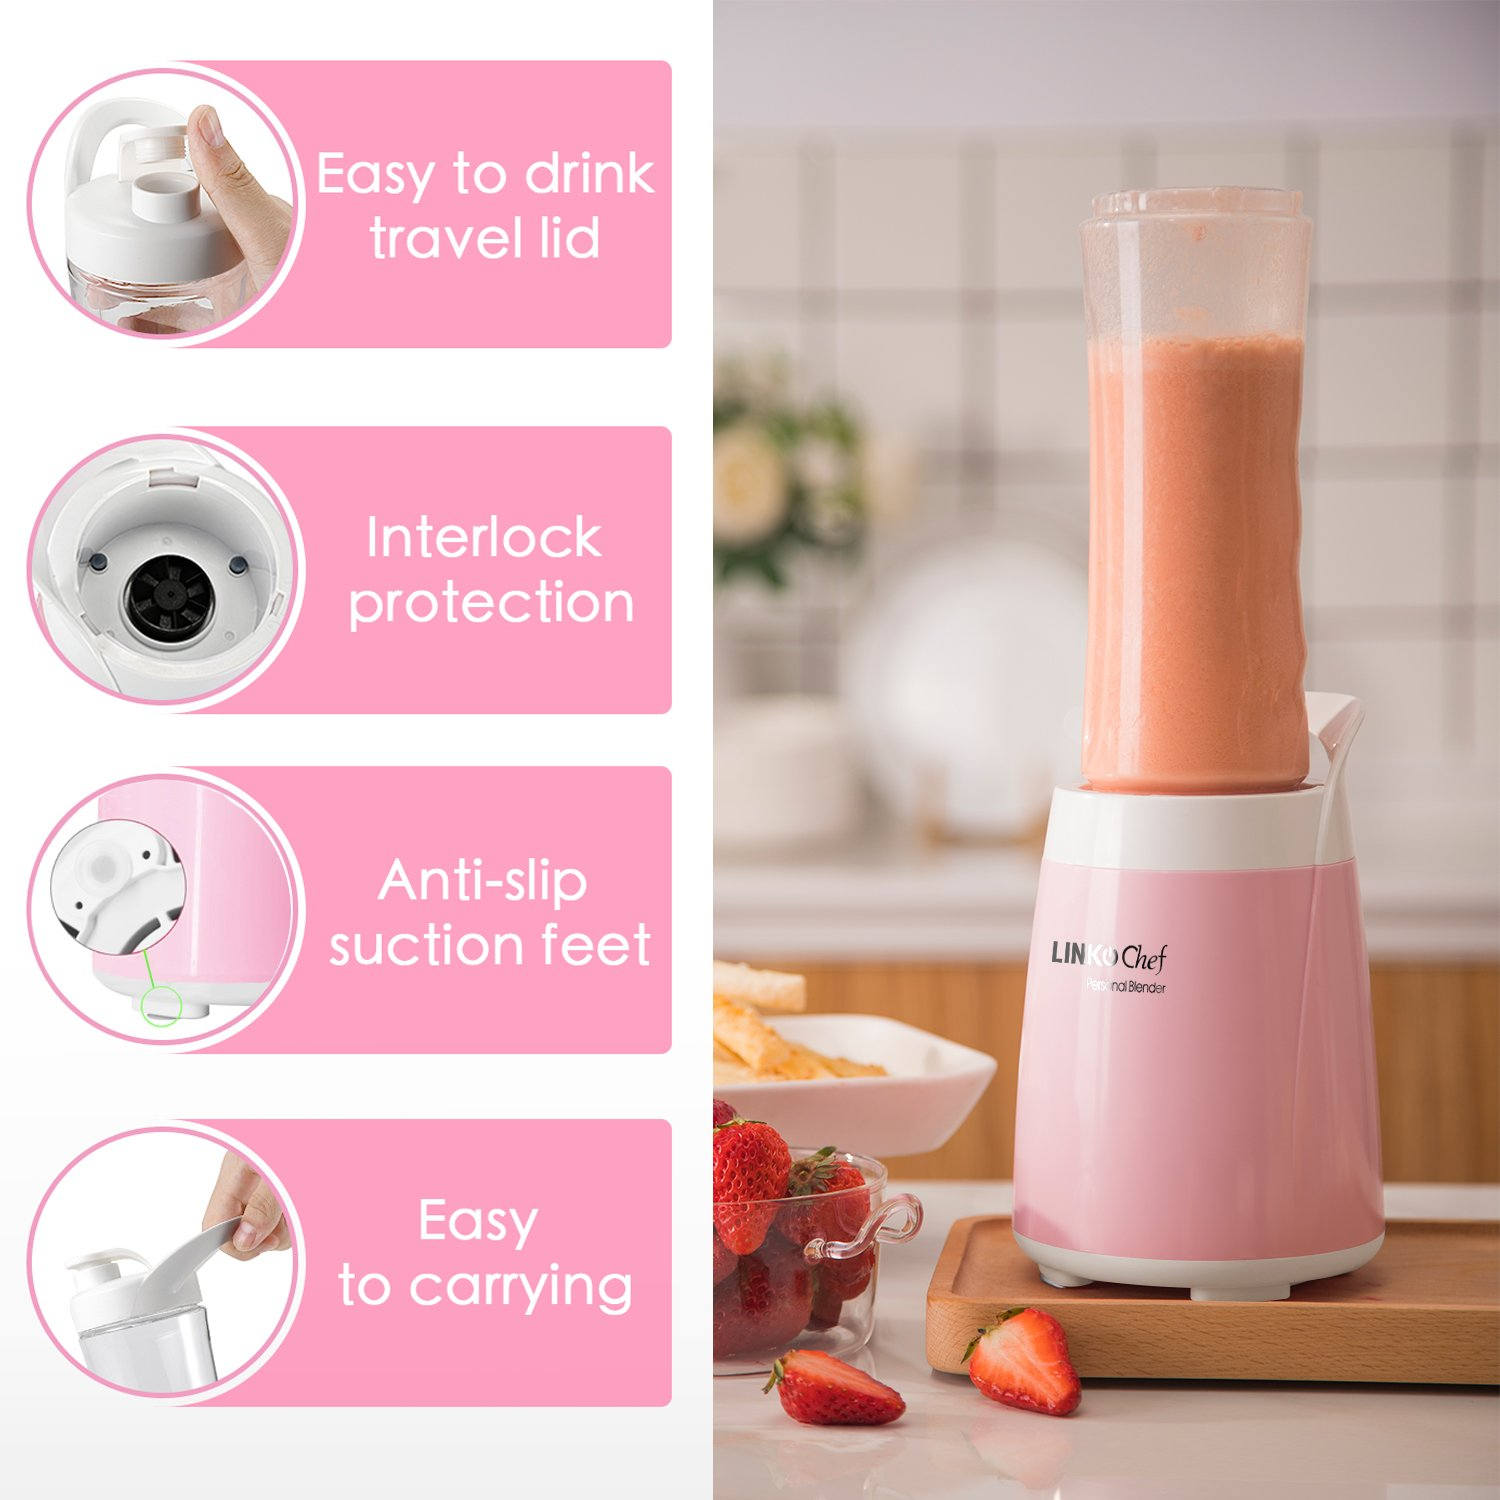 Smoothie Blender LINKChef Personal Blender 2 Tritan BPA-Free Travel Sport Bottles, Small Blender Smoothies and Shakes, Removable BPA- Free& FDA, Pink/ White (PB-6525)- 3 Years Warranty (Pink and white) by LINKChef (Image #2)